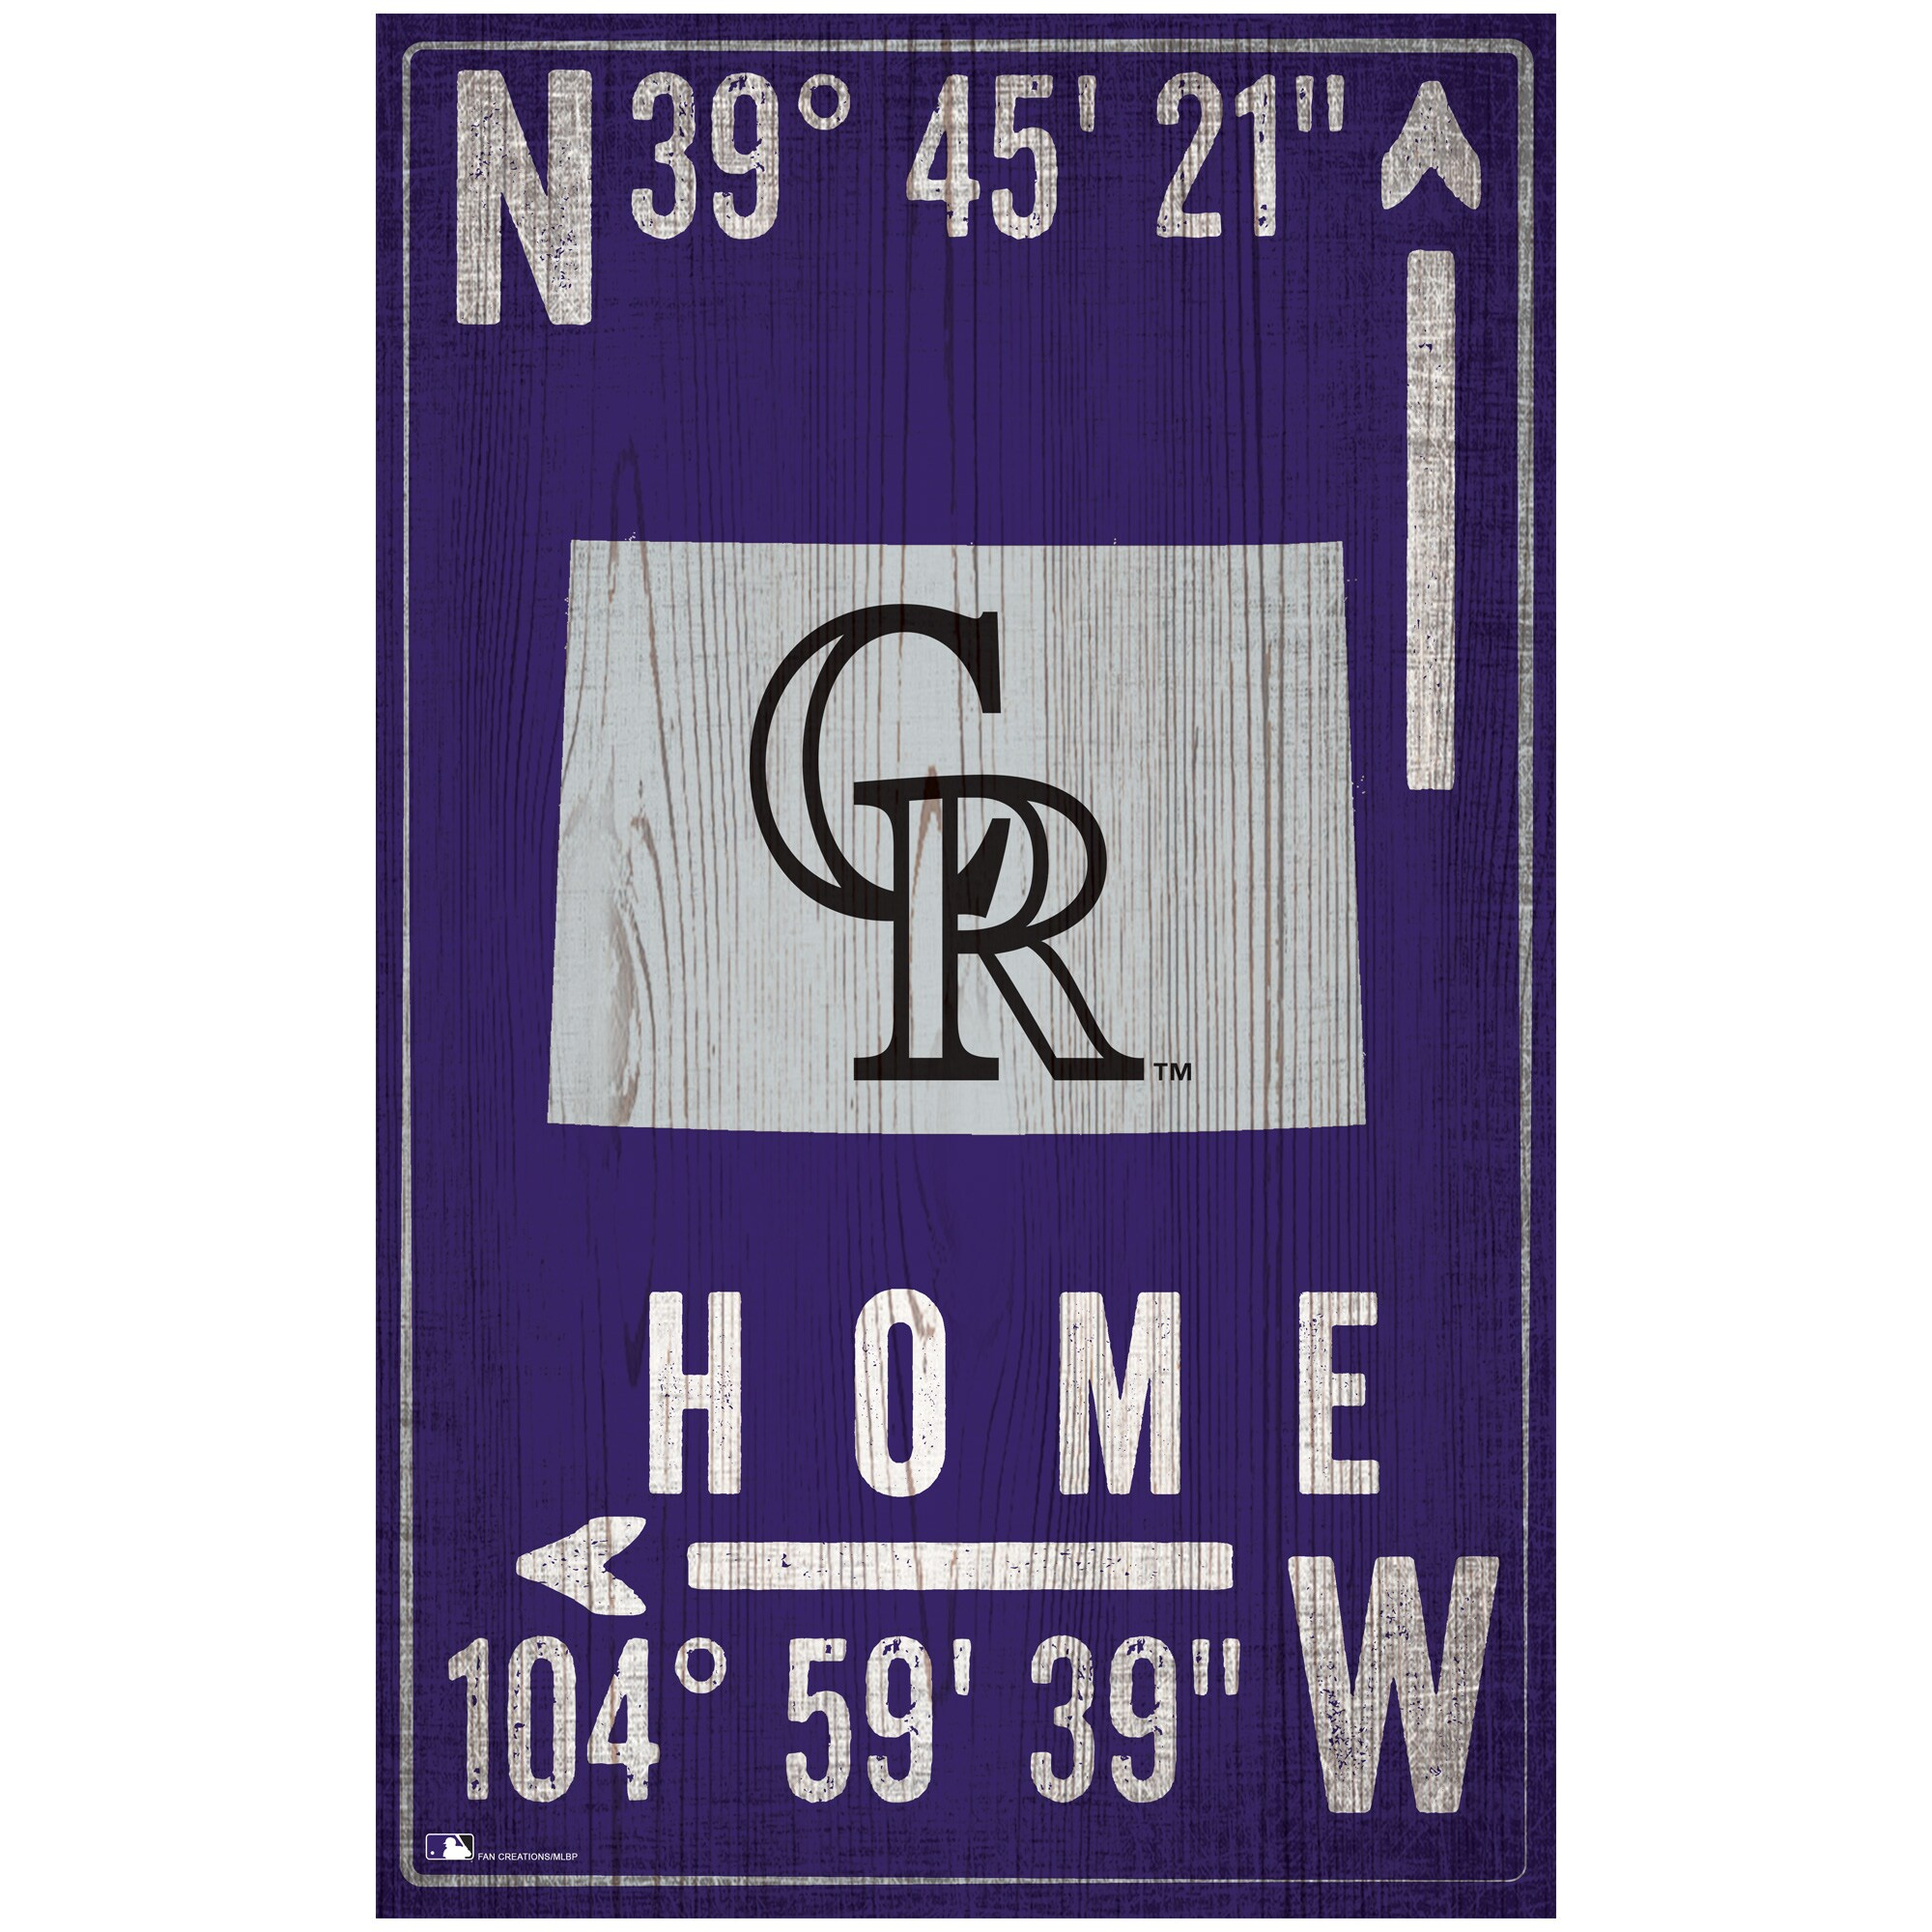 "Colorado Rockies 11"" x 19"" Coordinate Sign"